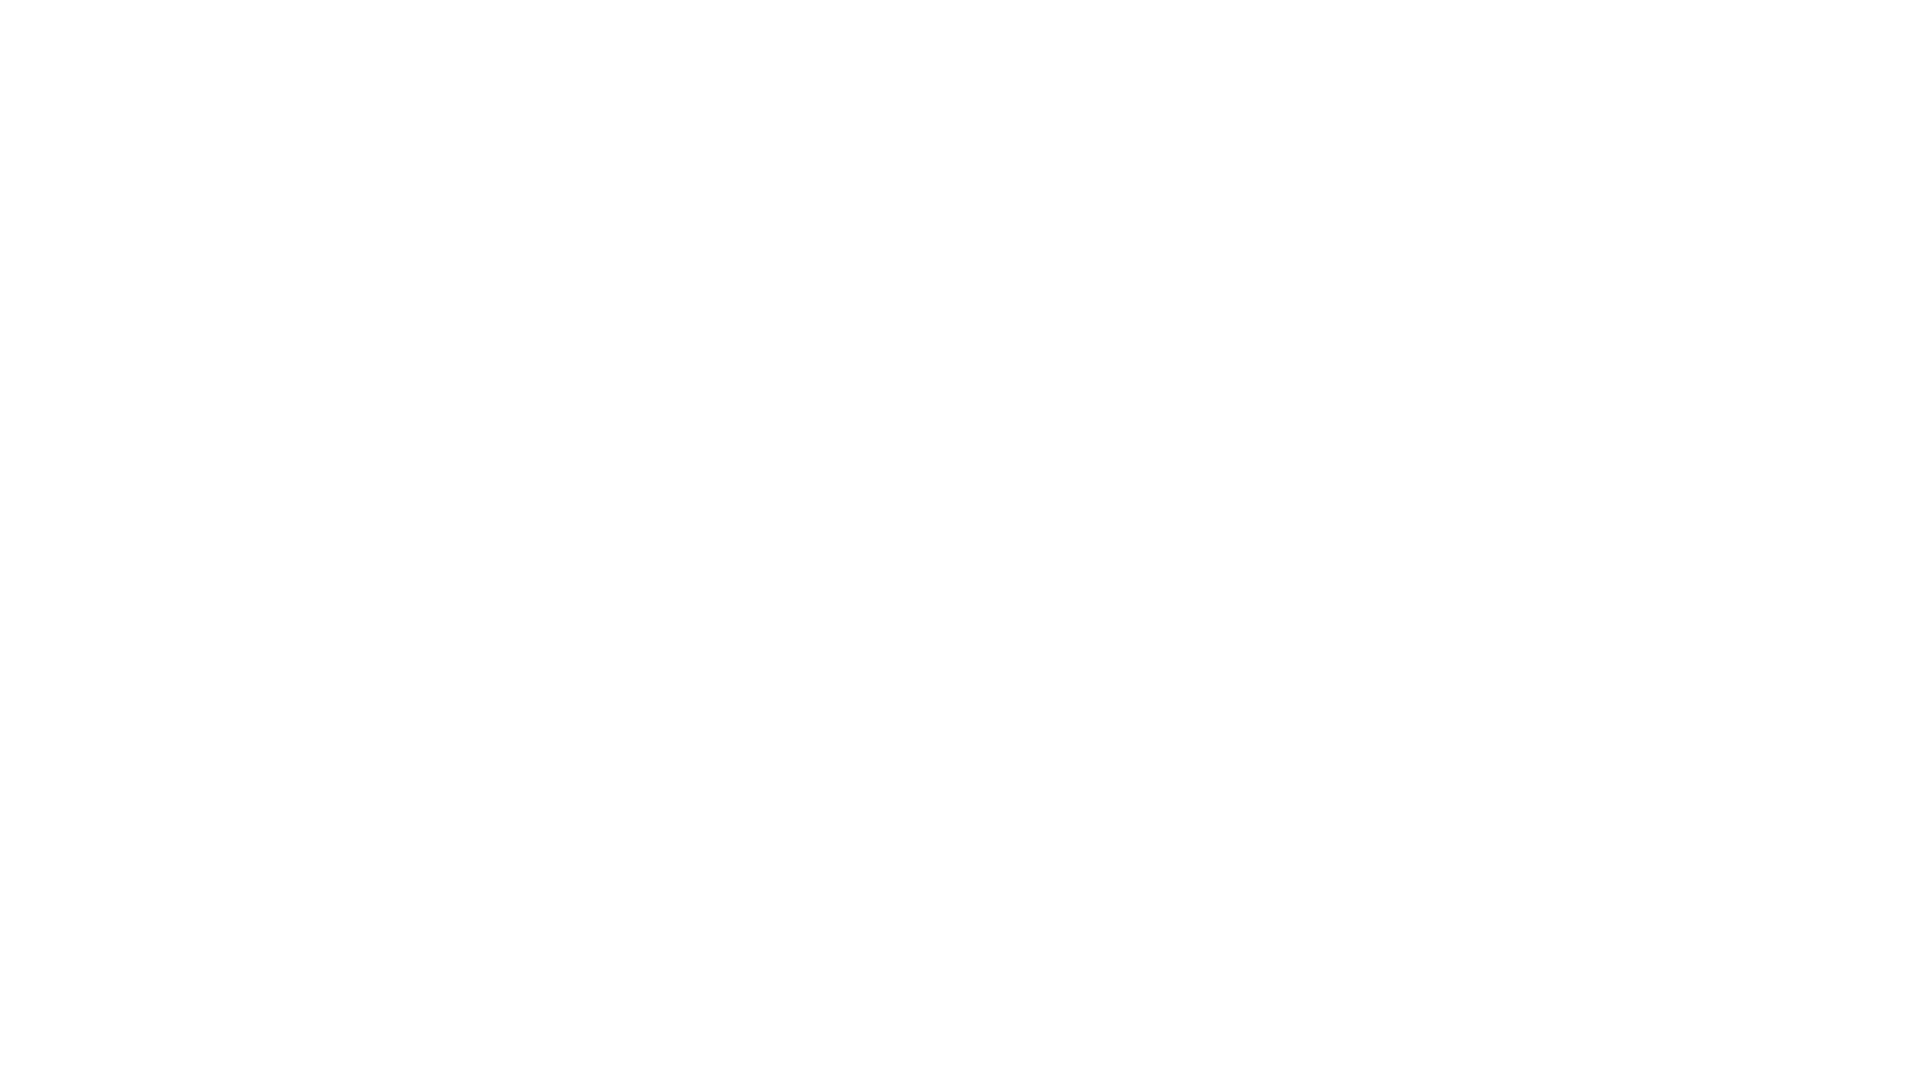 KWAVE 107.9